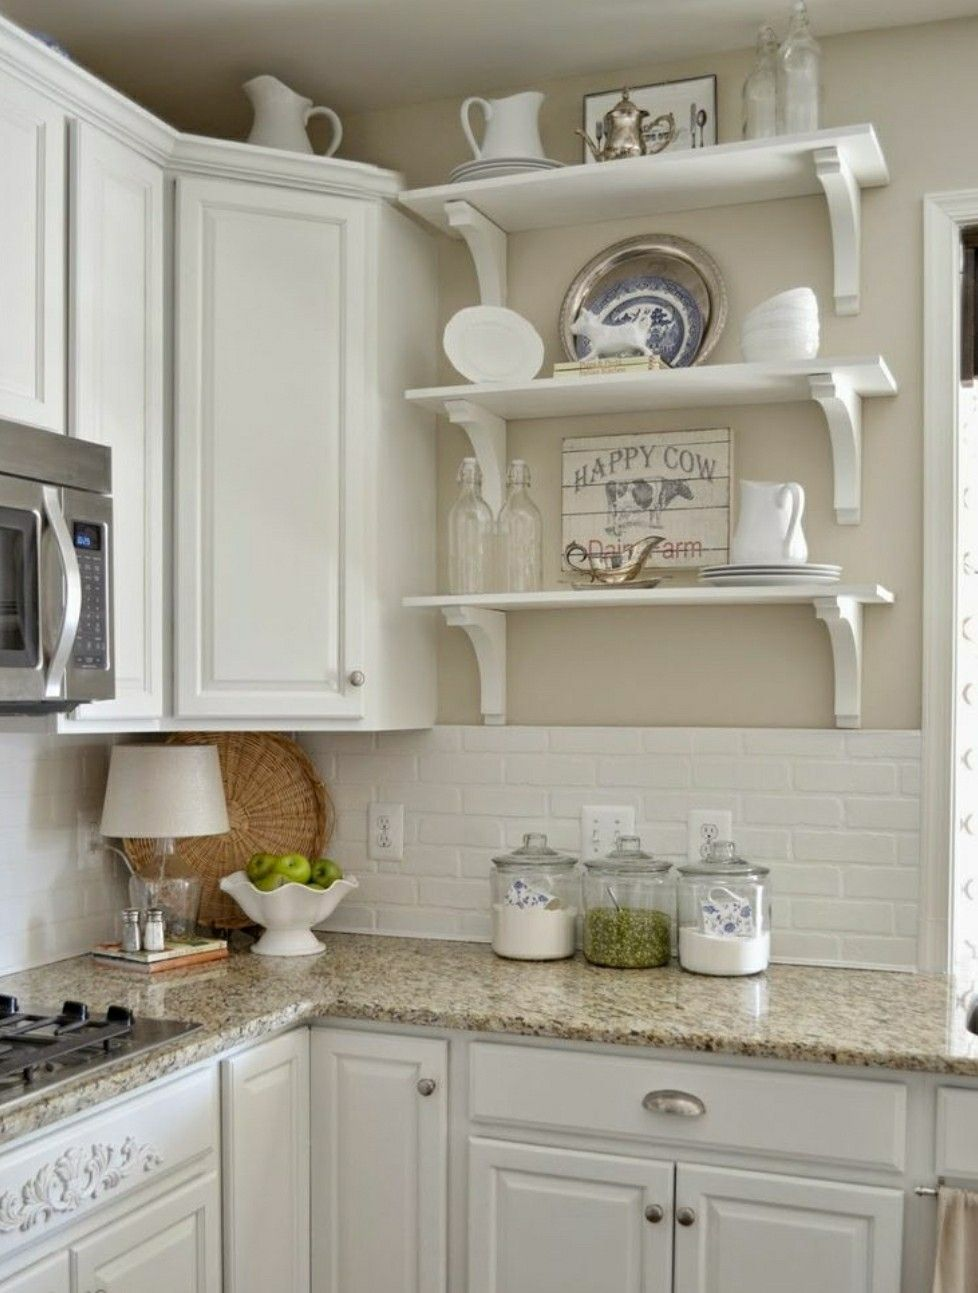 Paint Color, Backsplash, And Countertop❤ ❤ ❤️